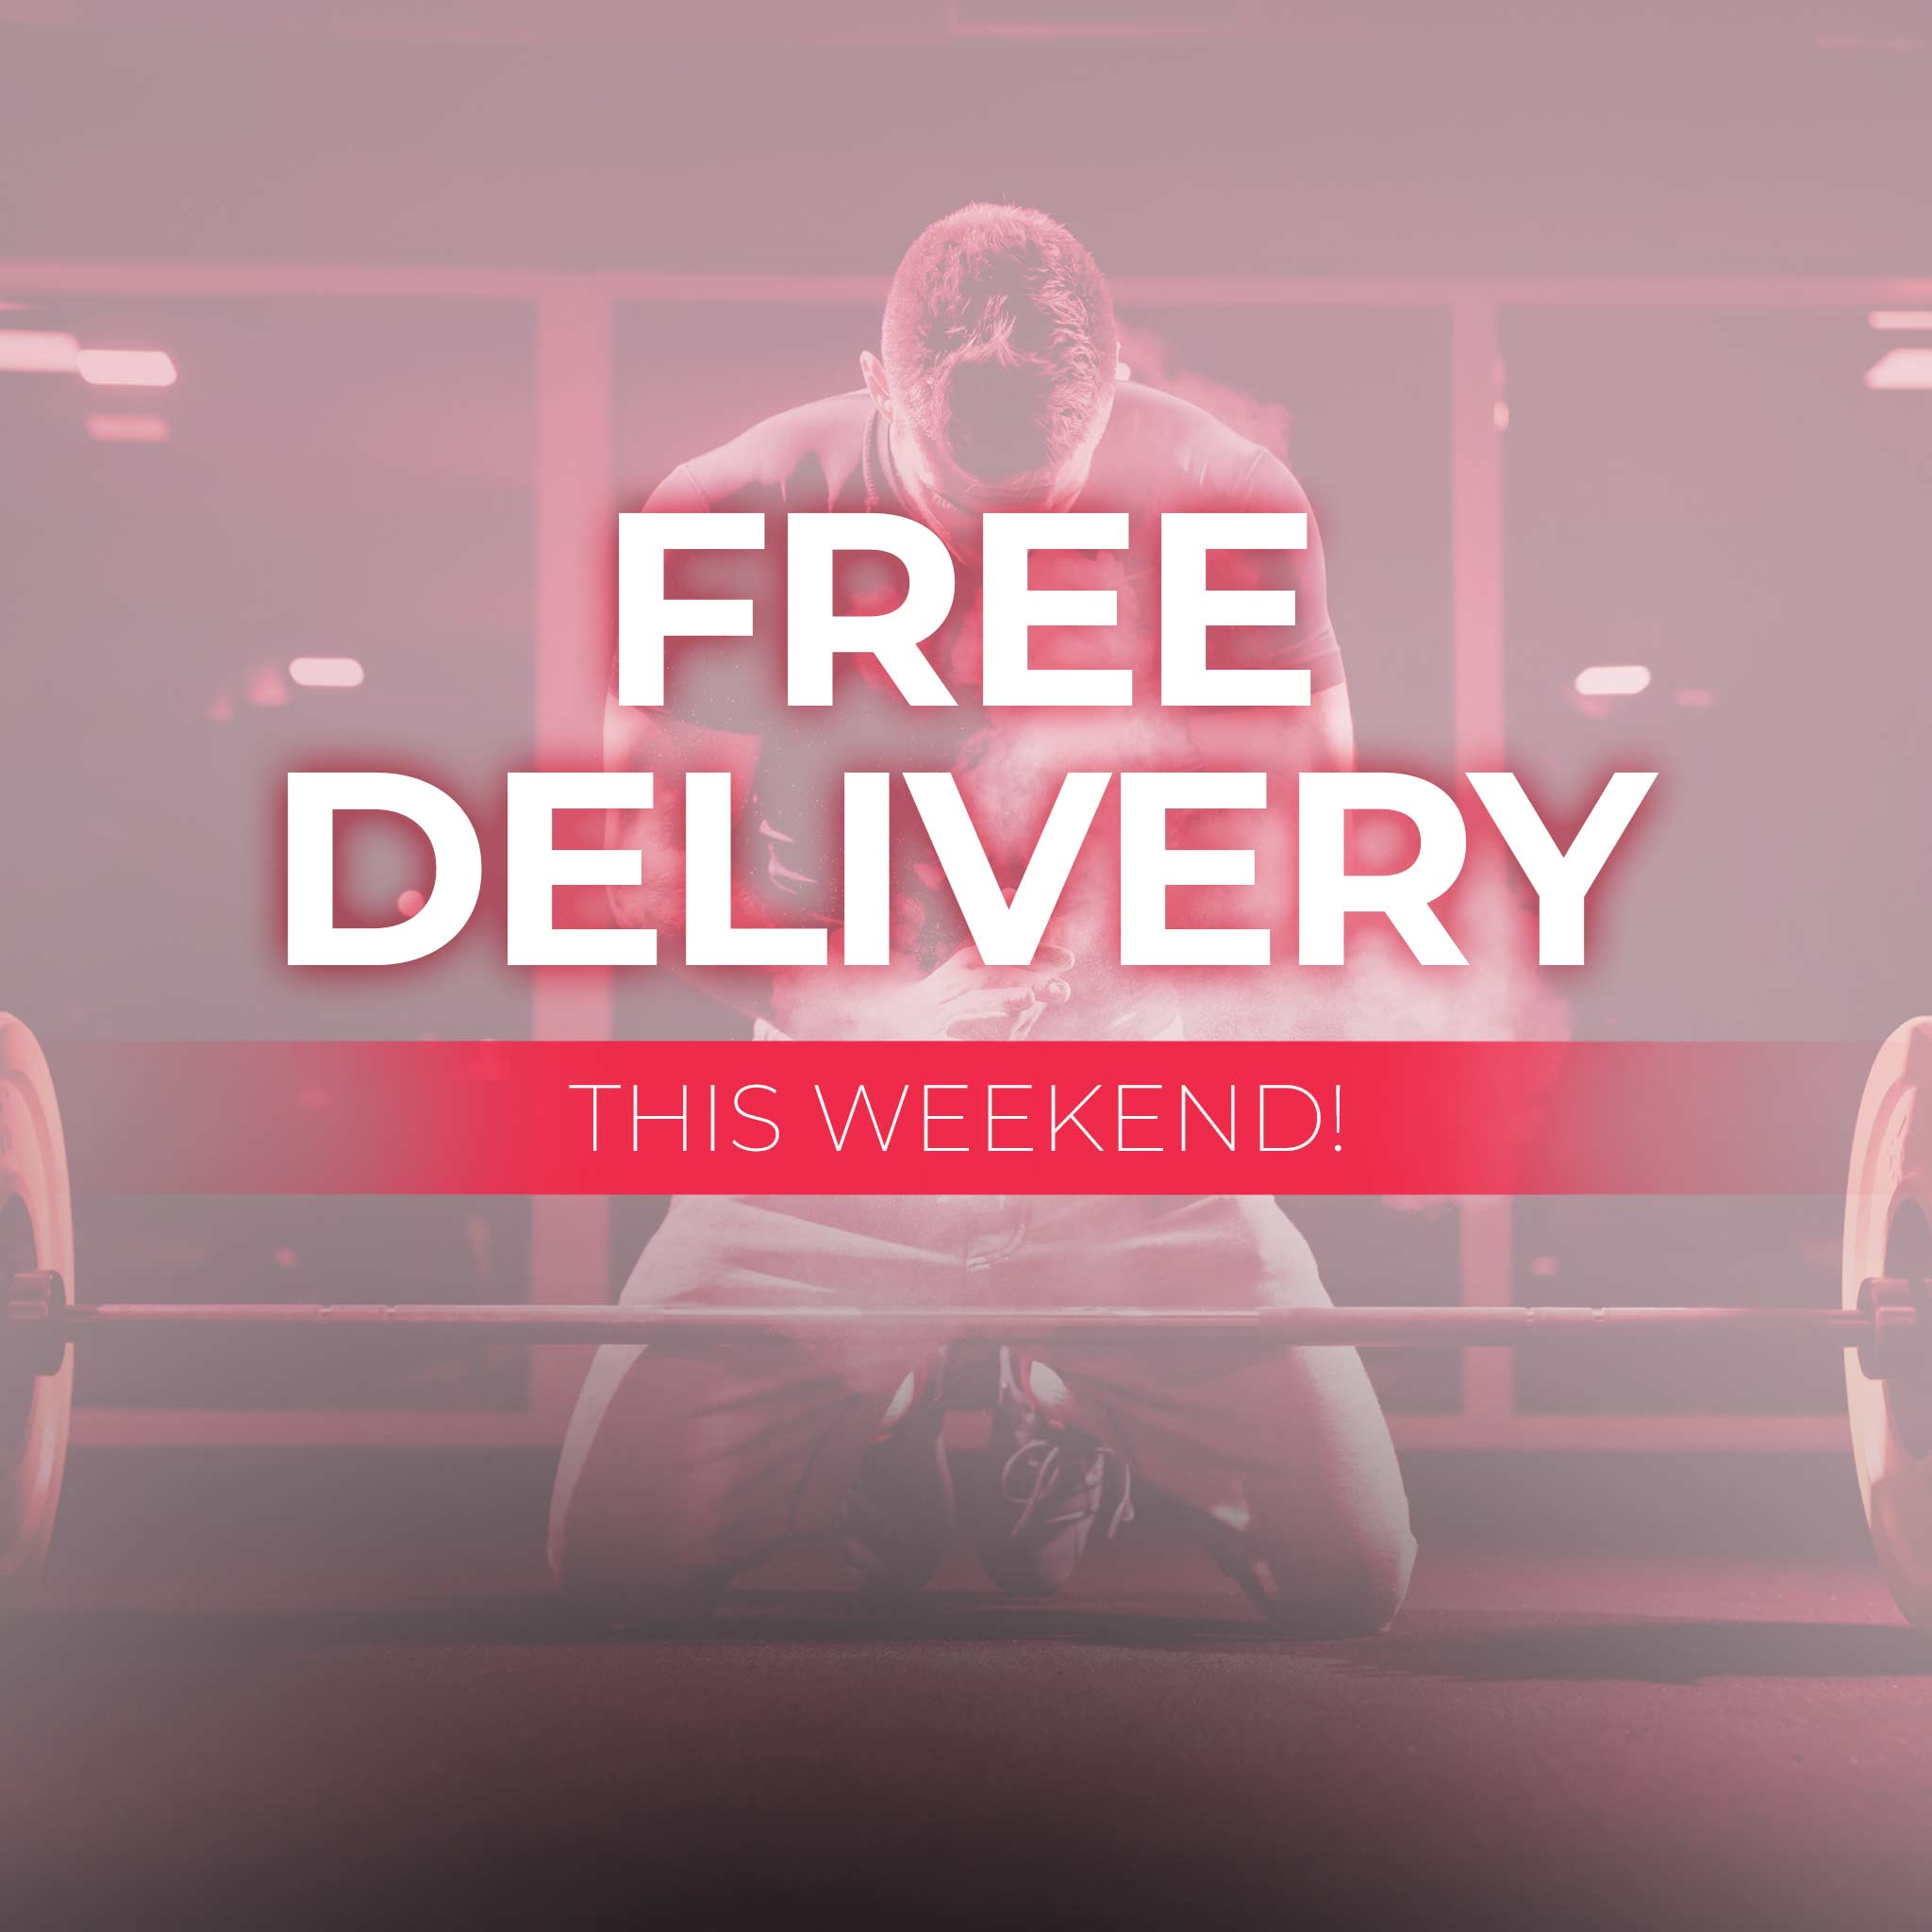 FREE DELIVERY ALL WEEKEND